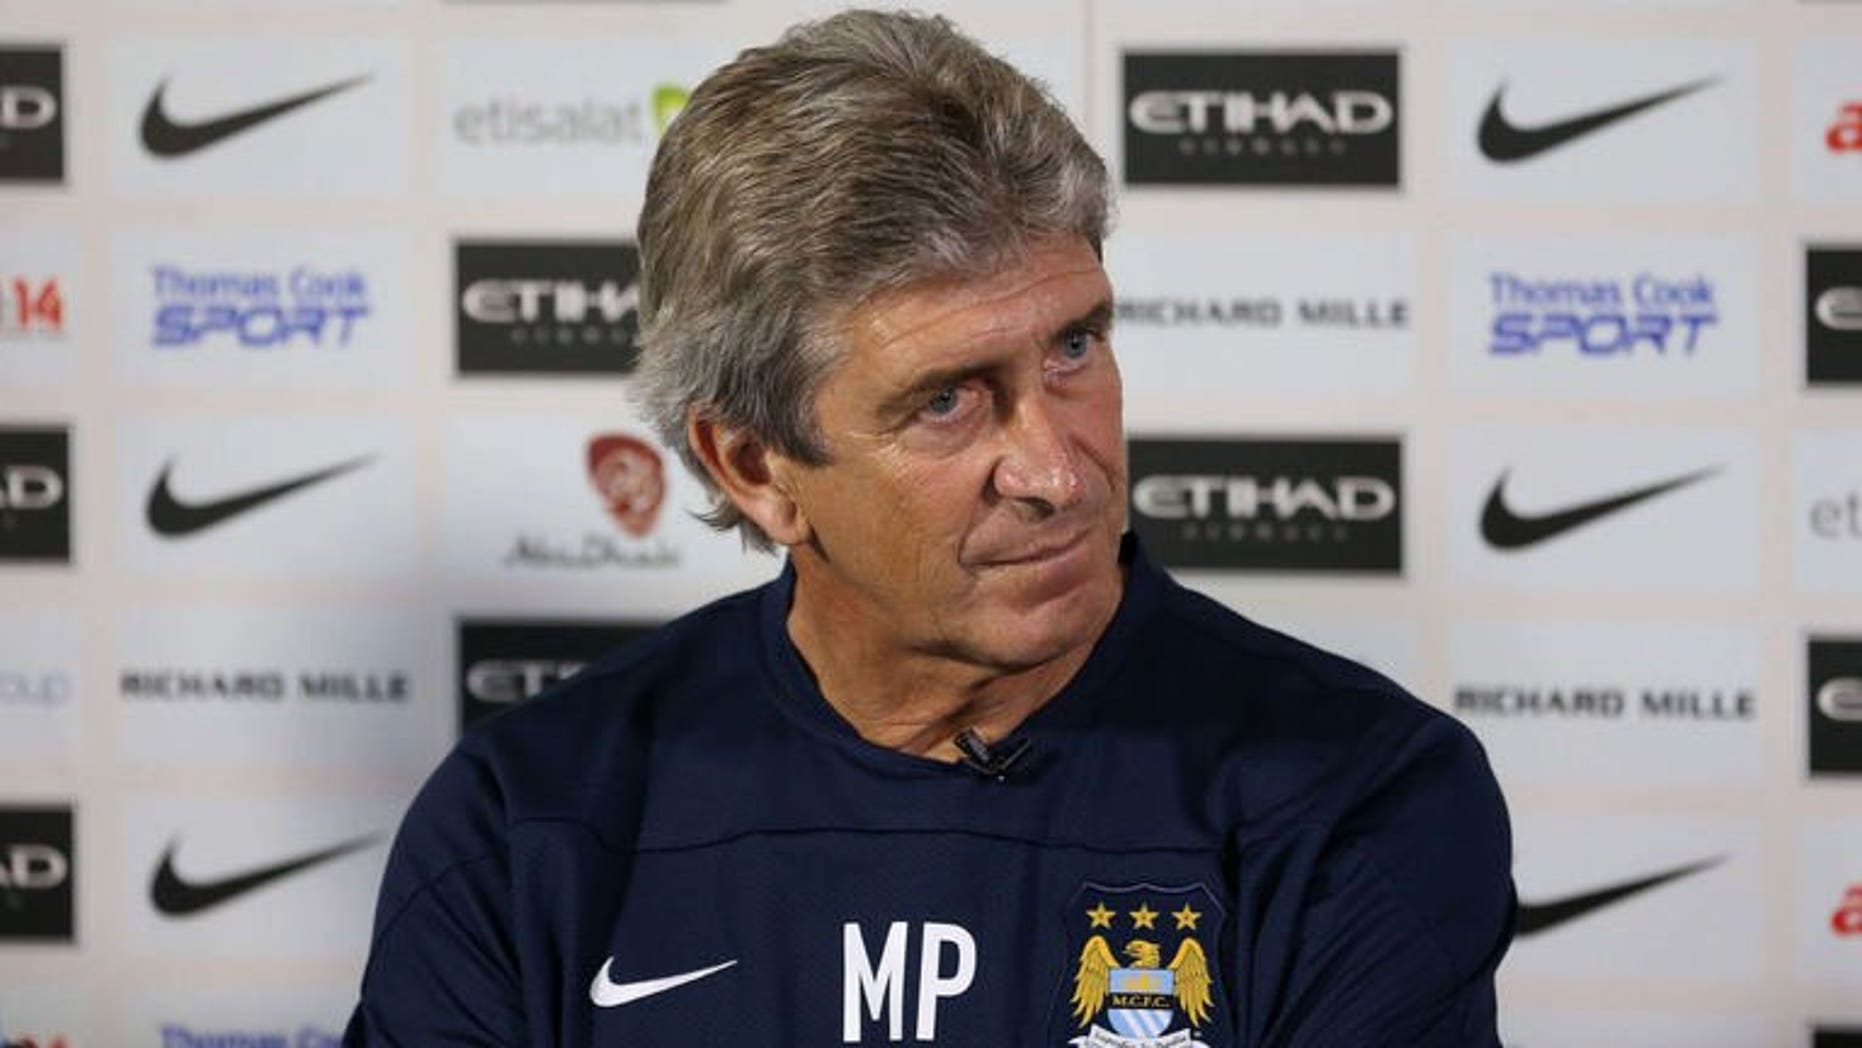 Manchester City's new Chilean manager Manuel Pellegrini attends a press conference at the team's Carrington Training Ground, in Carrington on July 10, 2013.